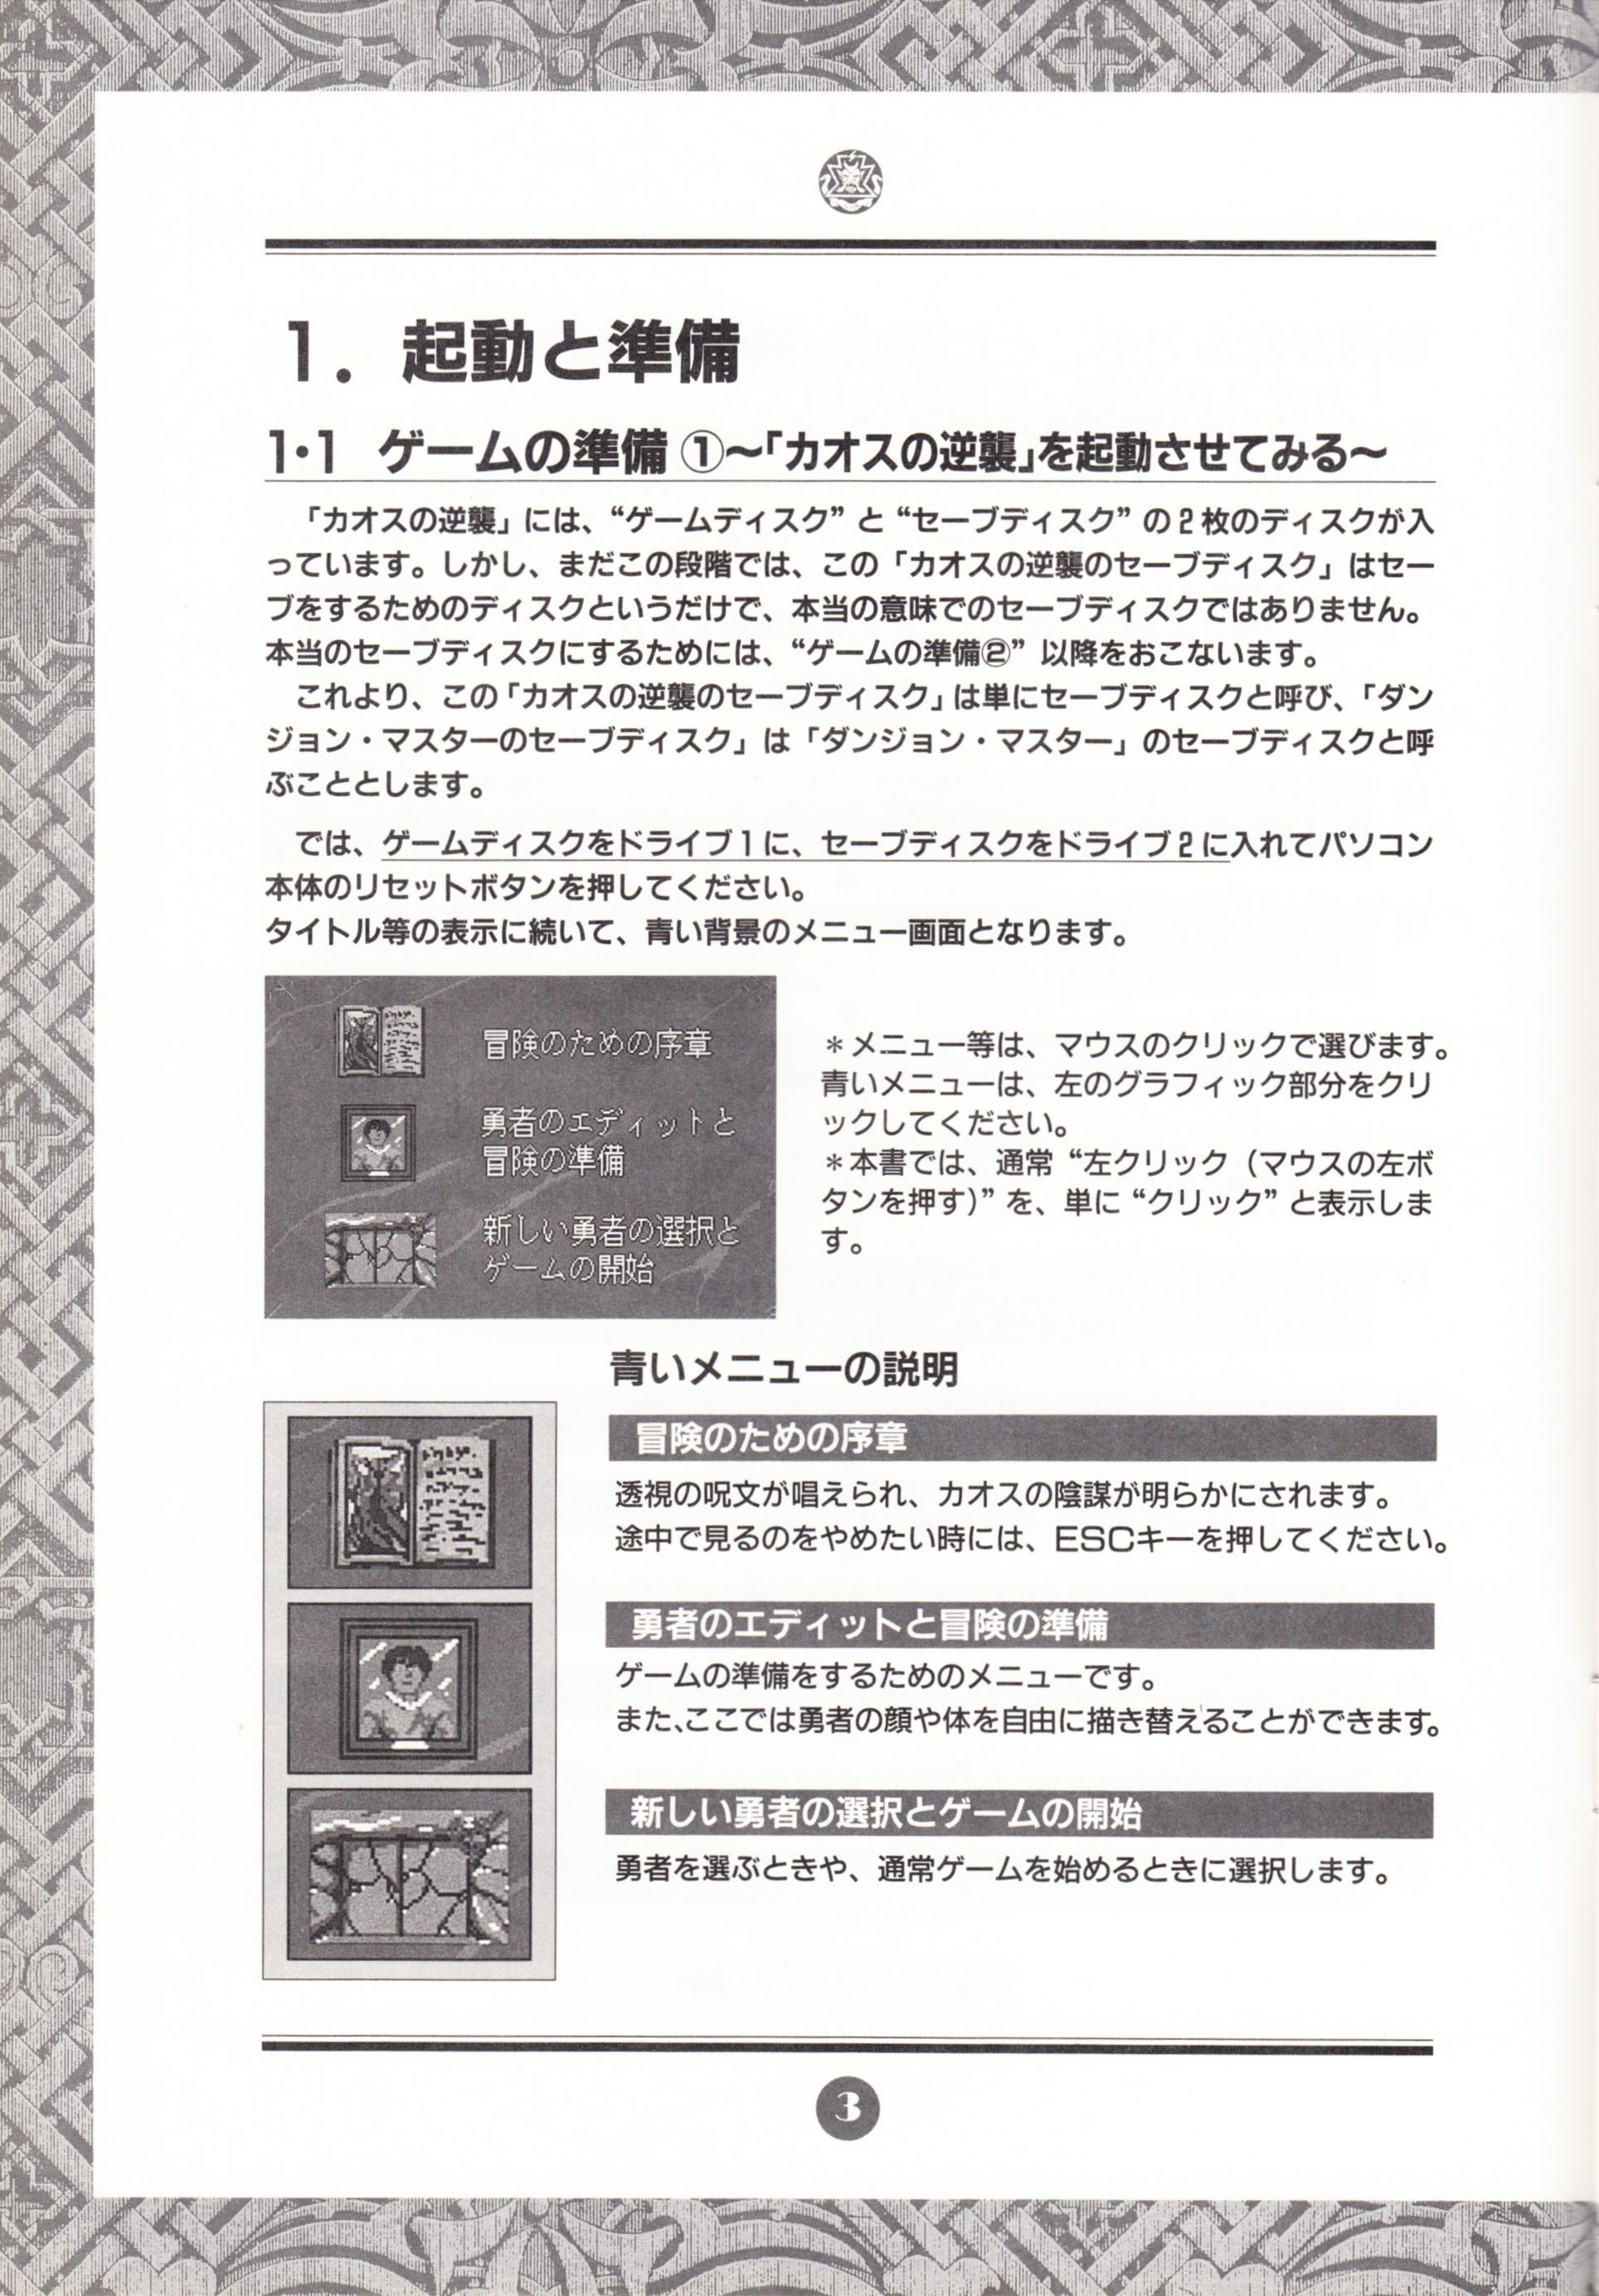 Game - Chaos Strikes Back - JP - PC-9801 - 5.25-inch - An Operation Manual - Page 006 - Scan